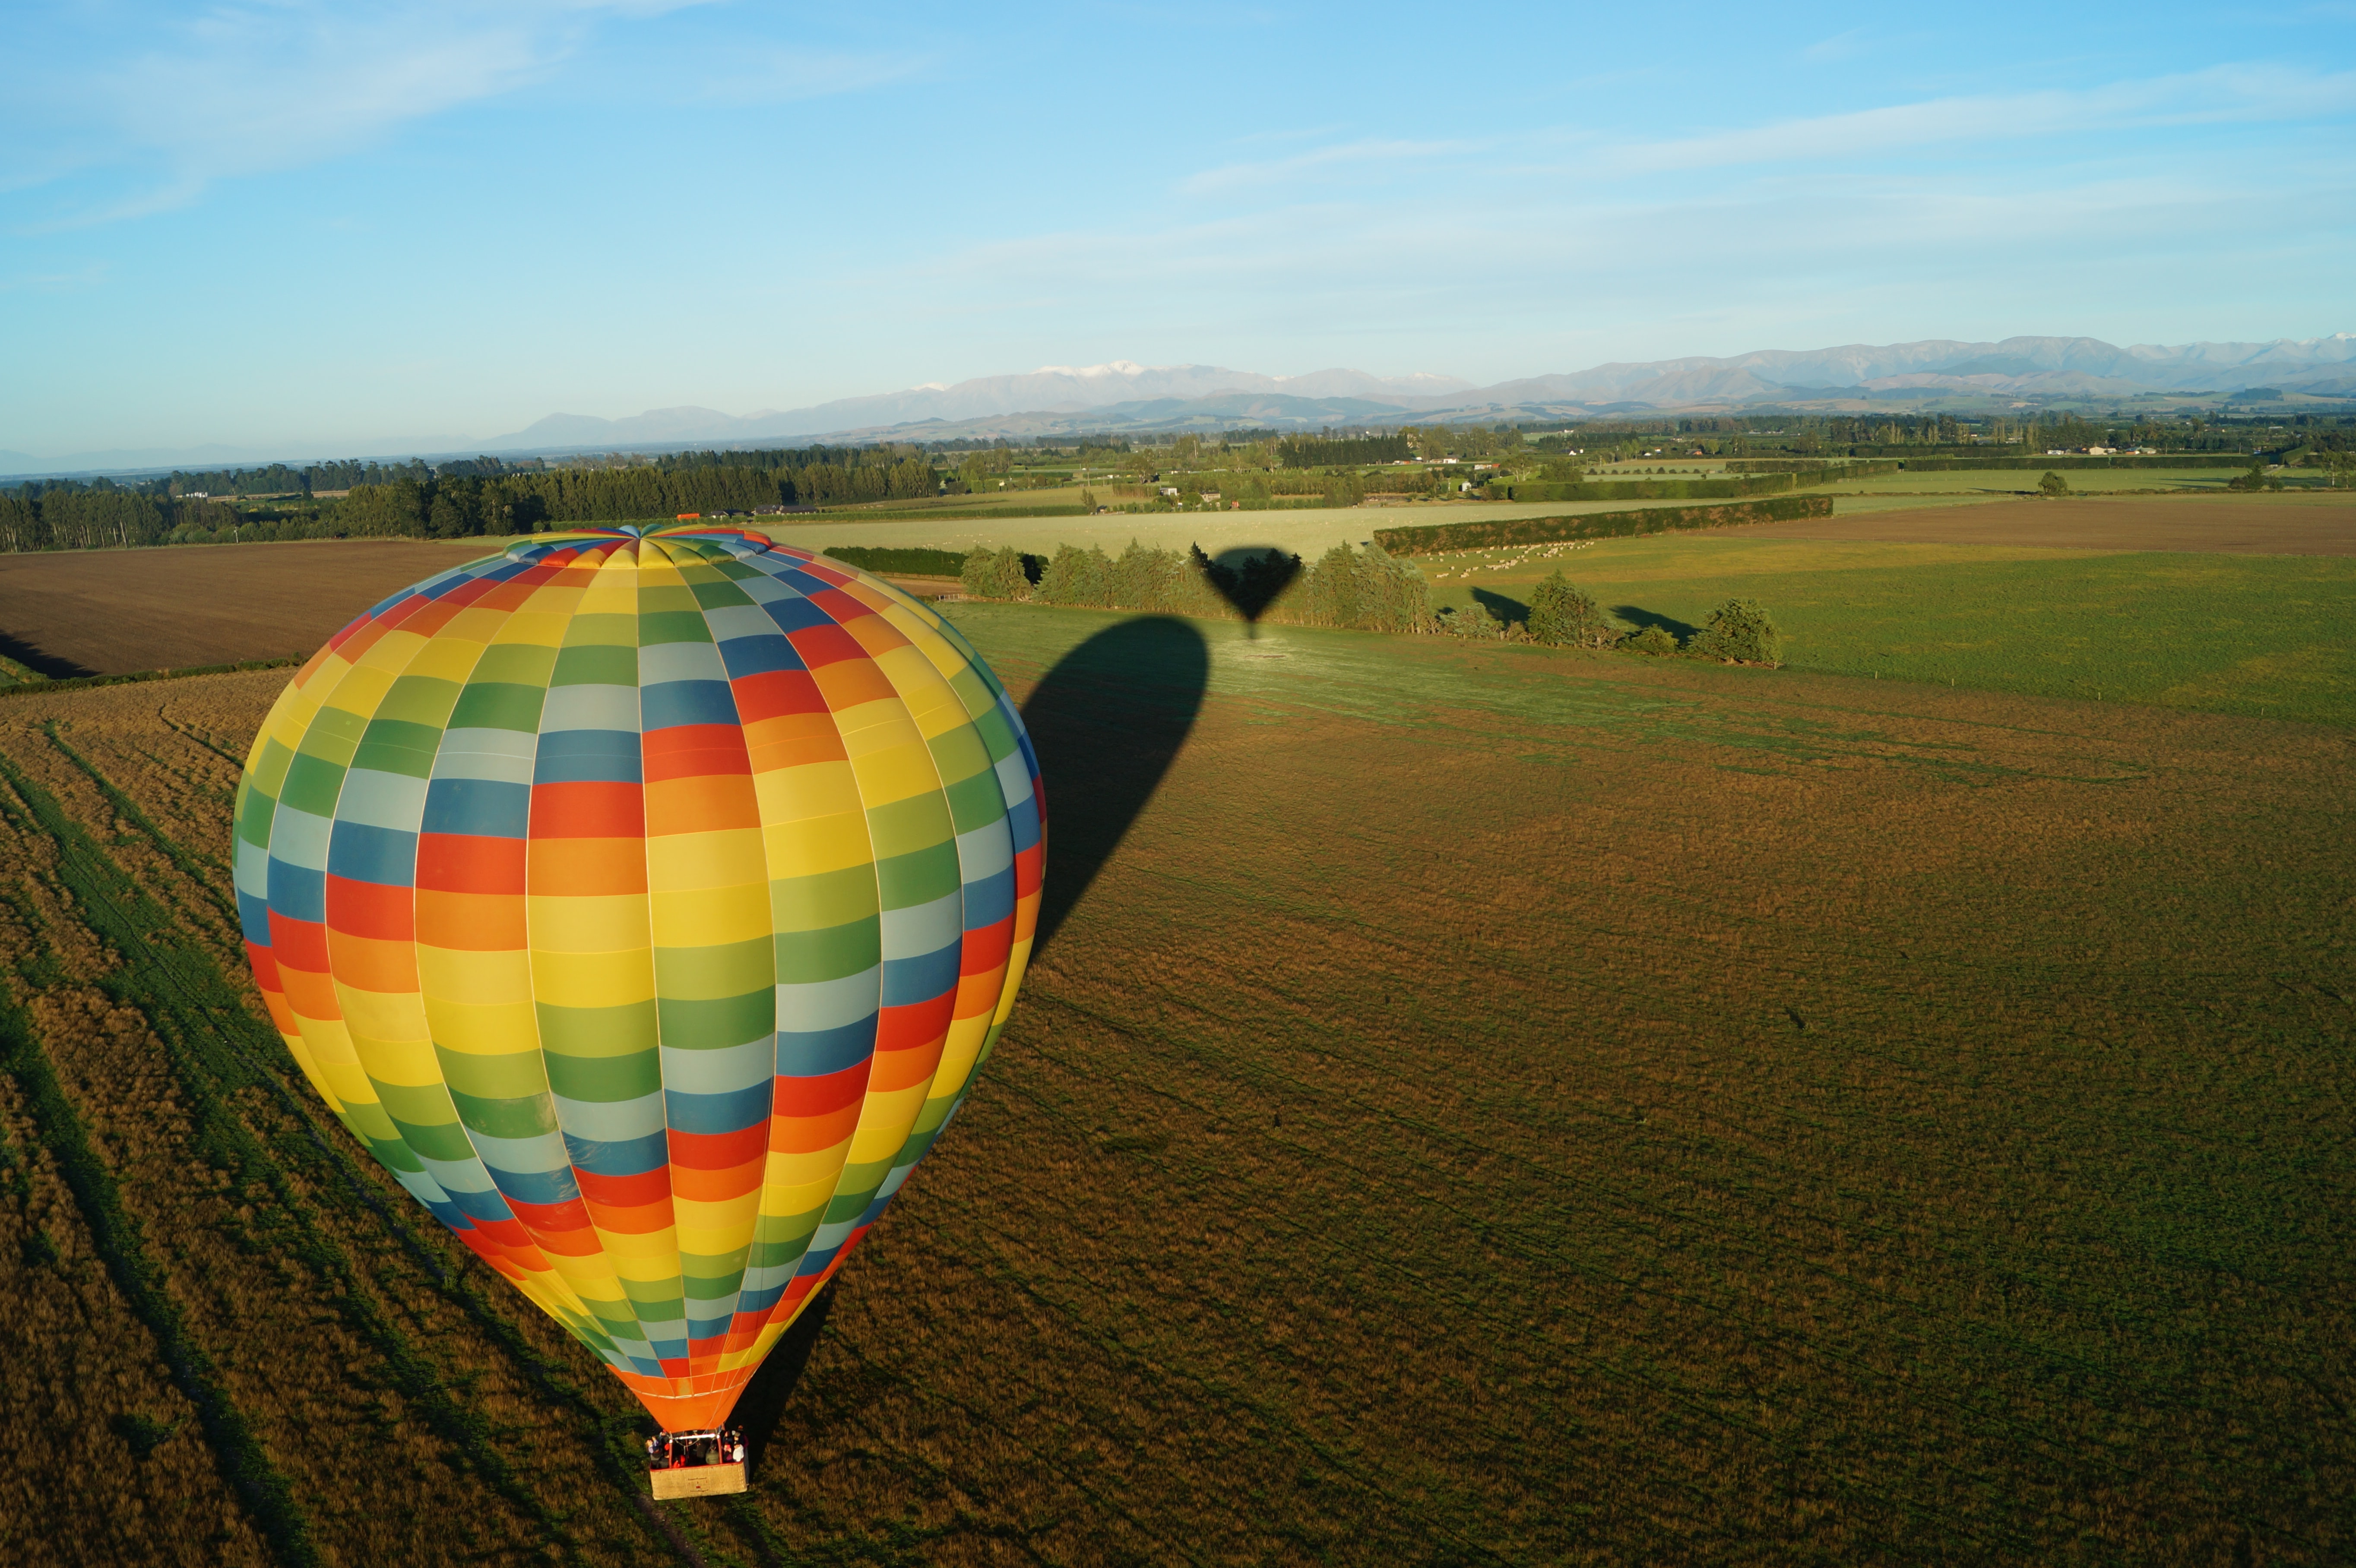 yellow and green hot air balloon during daytime